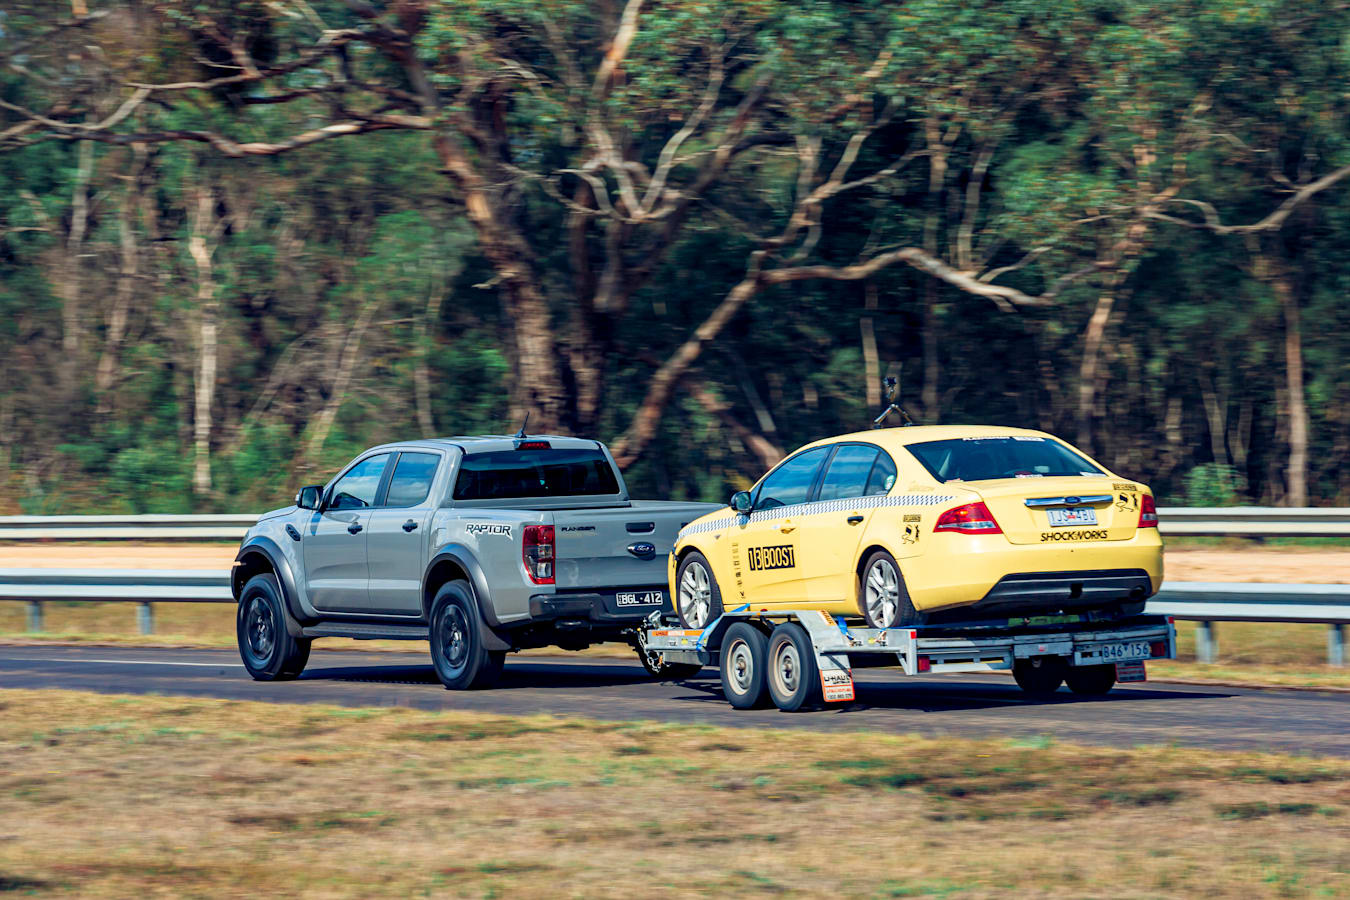 4 X 4 Australia Comparisons 2021 May 21 Ford Ranger Raptor Towing Performance